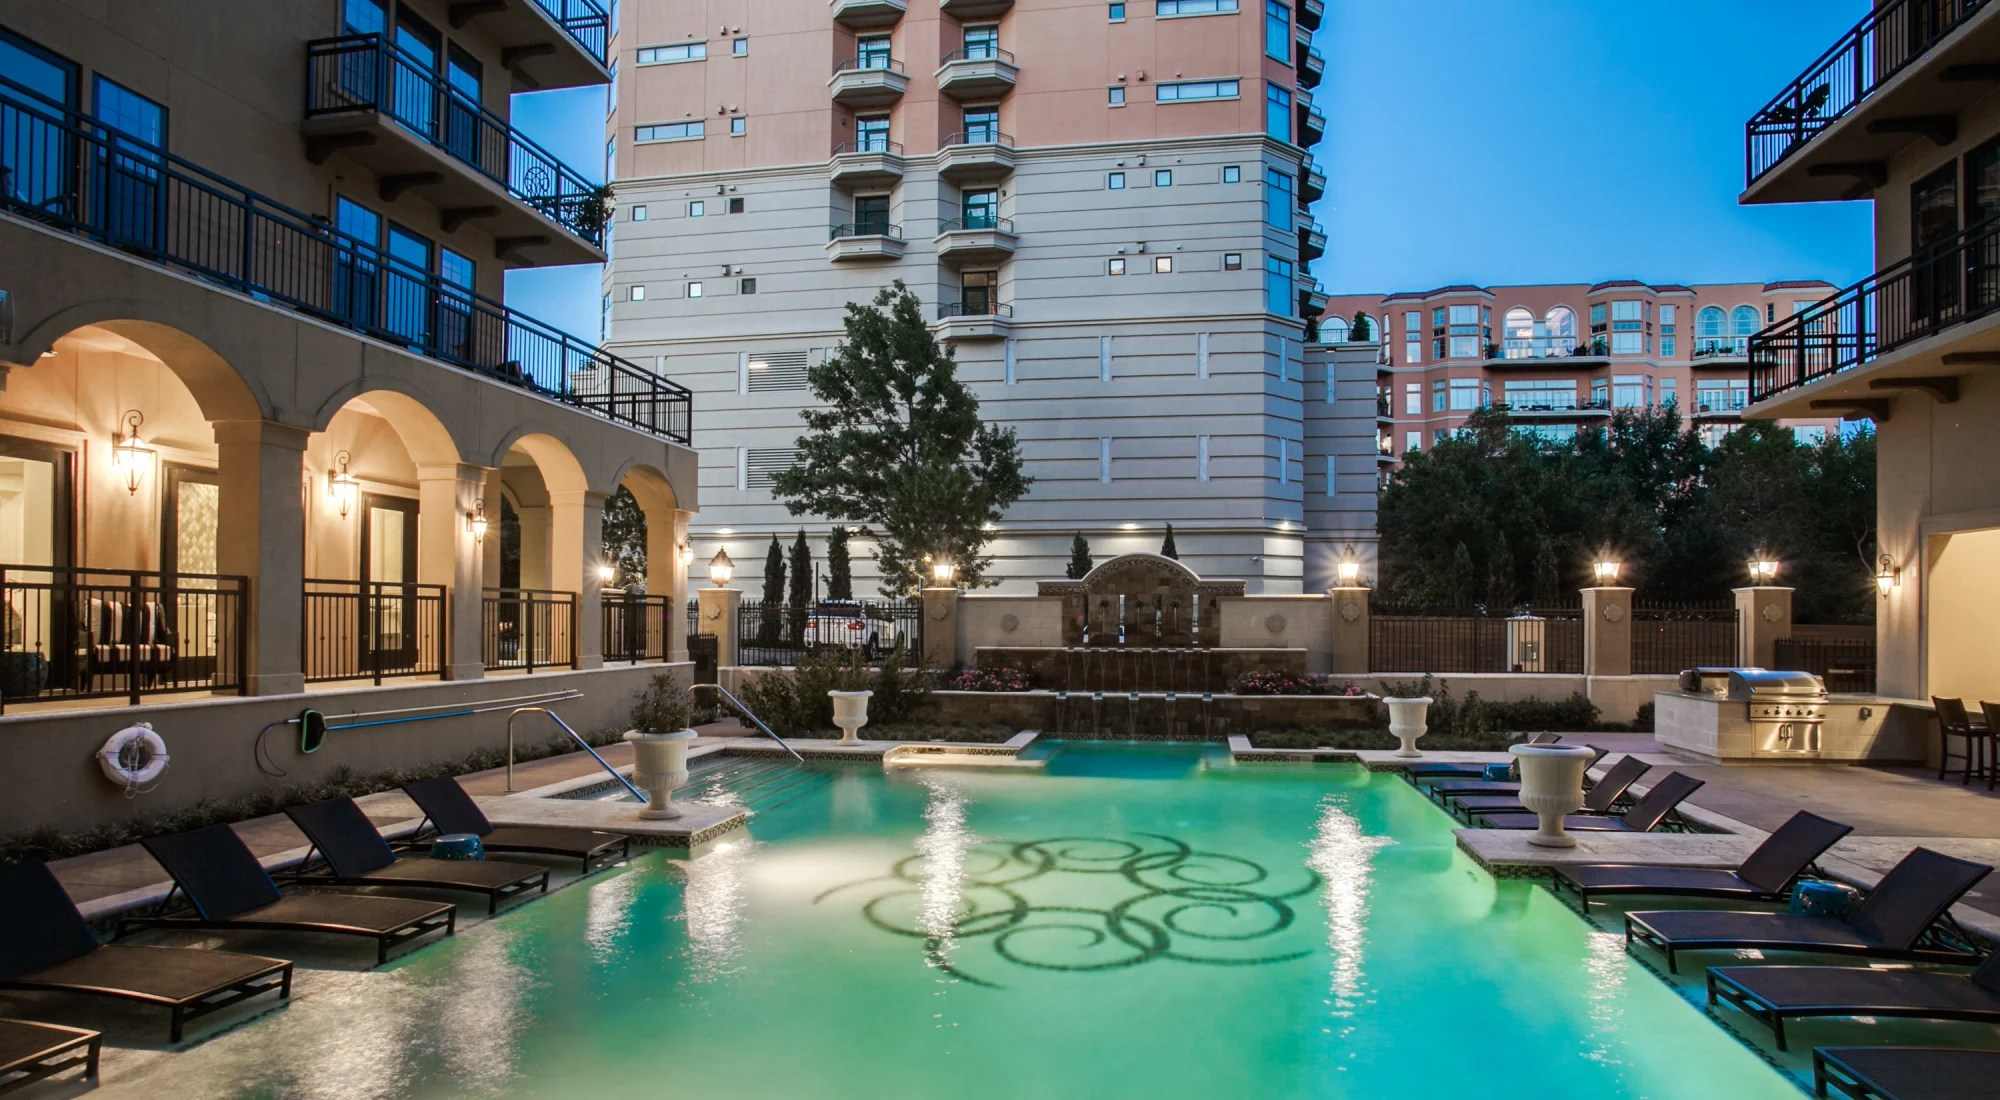 Garage Apartment For Rent In Dallas Oak Lawn Dallas Tx Apartments For Rent Cantabria At Turtle Creek